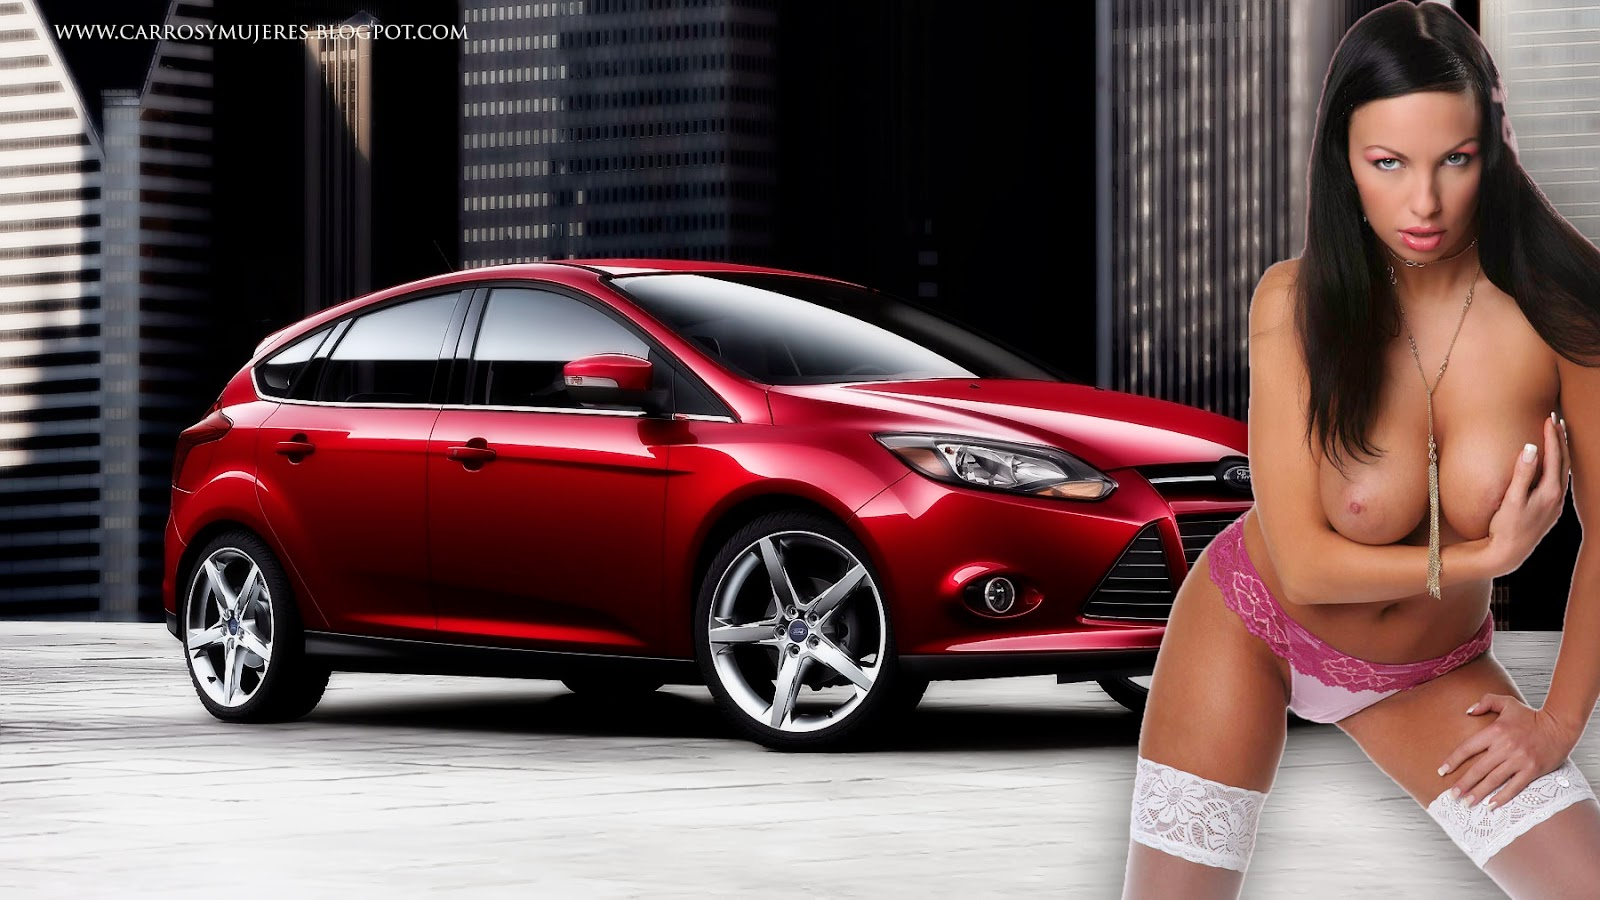 FOTOS DE CARROS Y MUJERES: WALLPAPERS DE HERMOSAS MUJERES Y FORD FOCUS